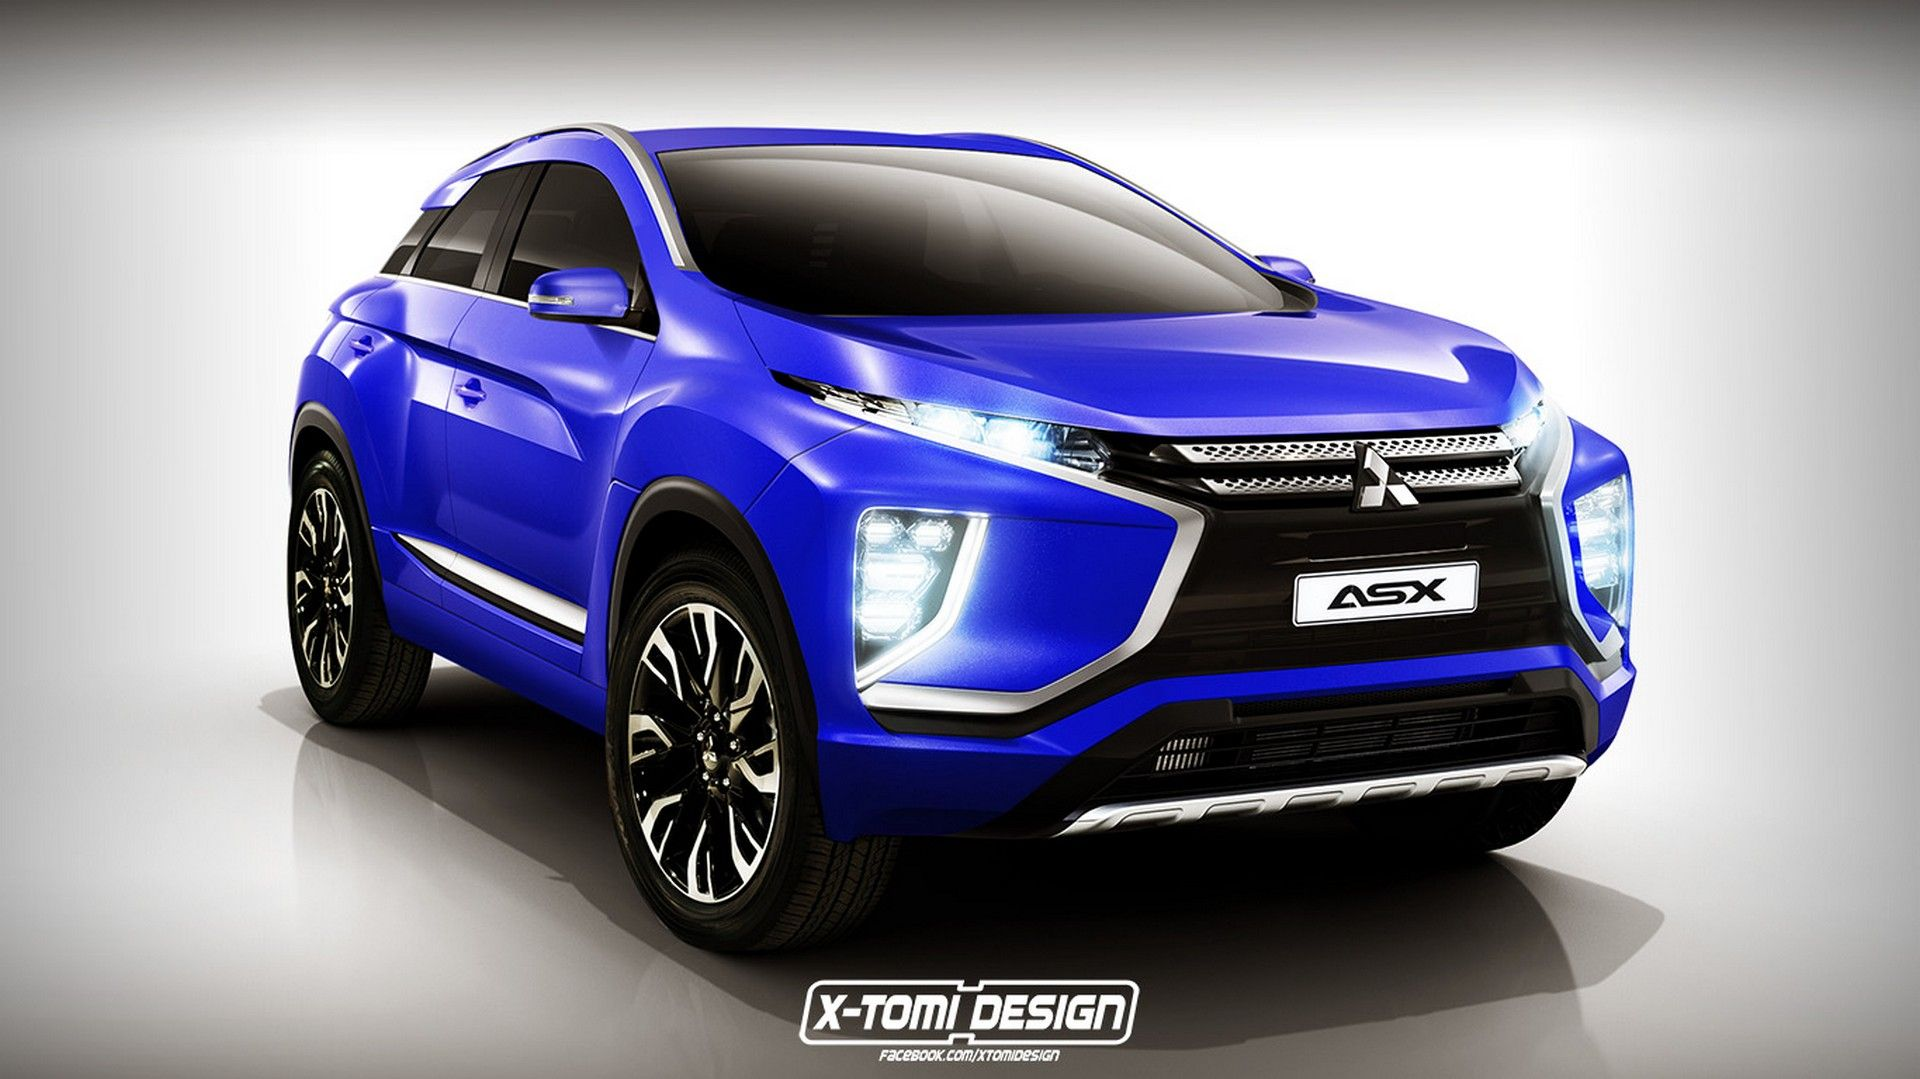 2019 Mitsubishi Outlander Design Price >> 2019 Mitsubishi ASX Concept – While the normal rise of .... | cars and Trucks | Pinterest | Cars